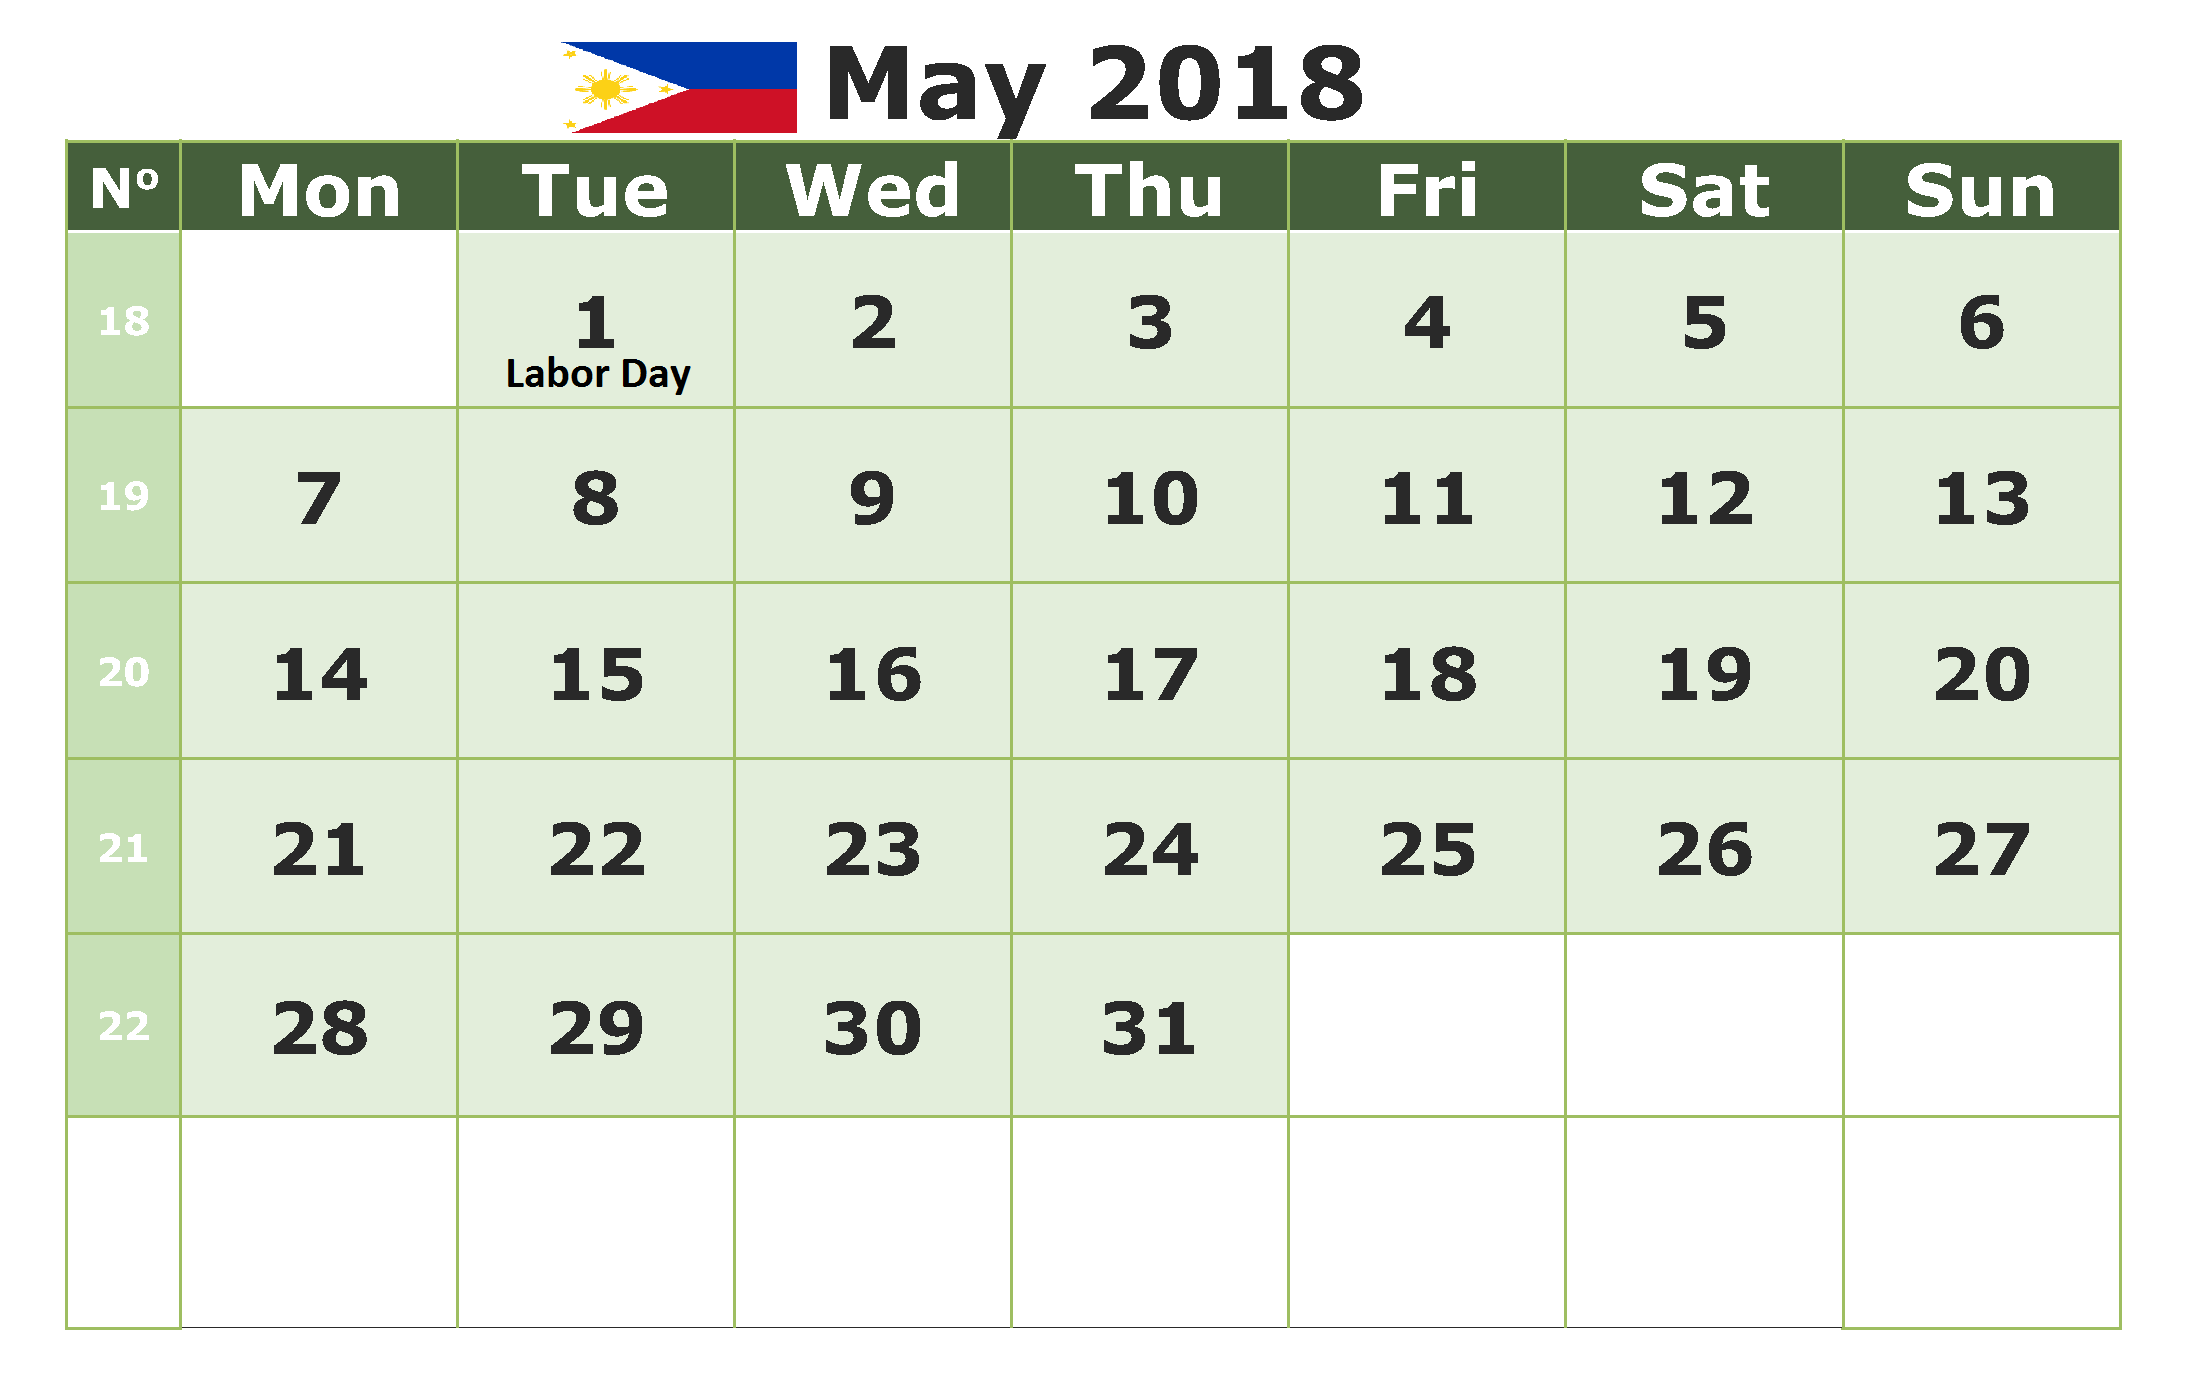 may 2018 philippines calendar with holidays